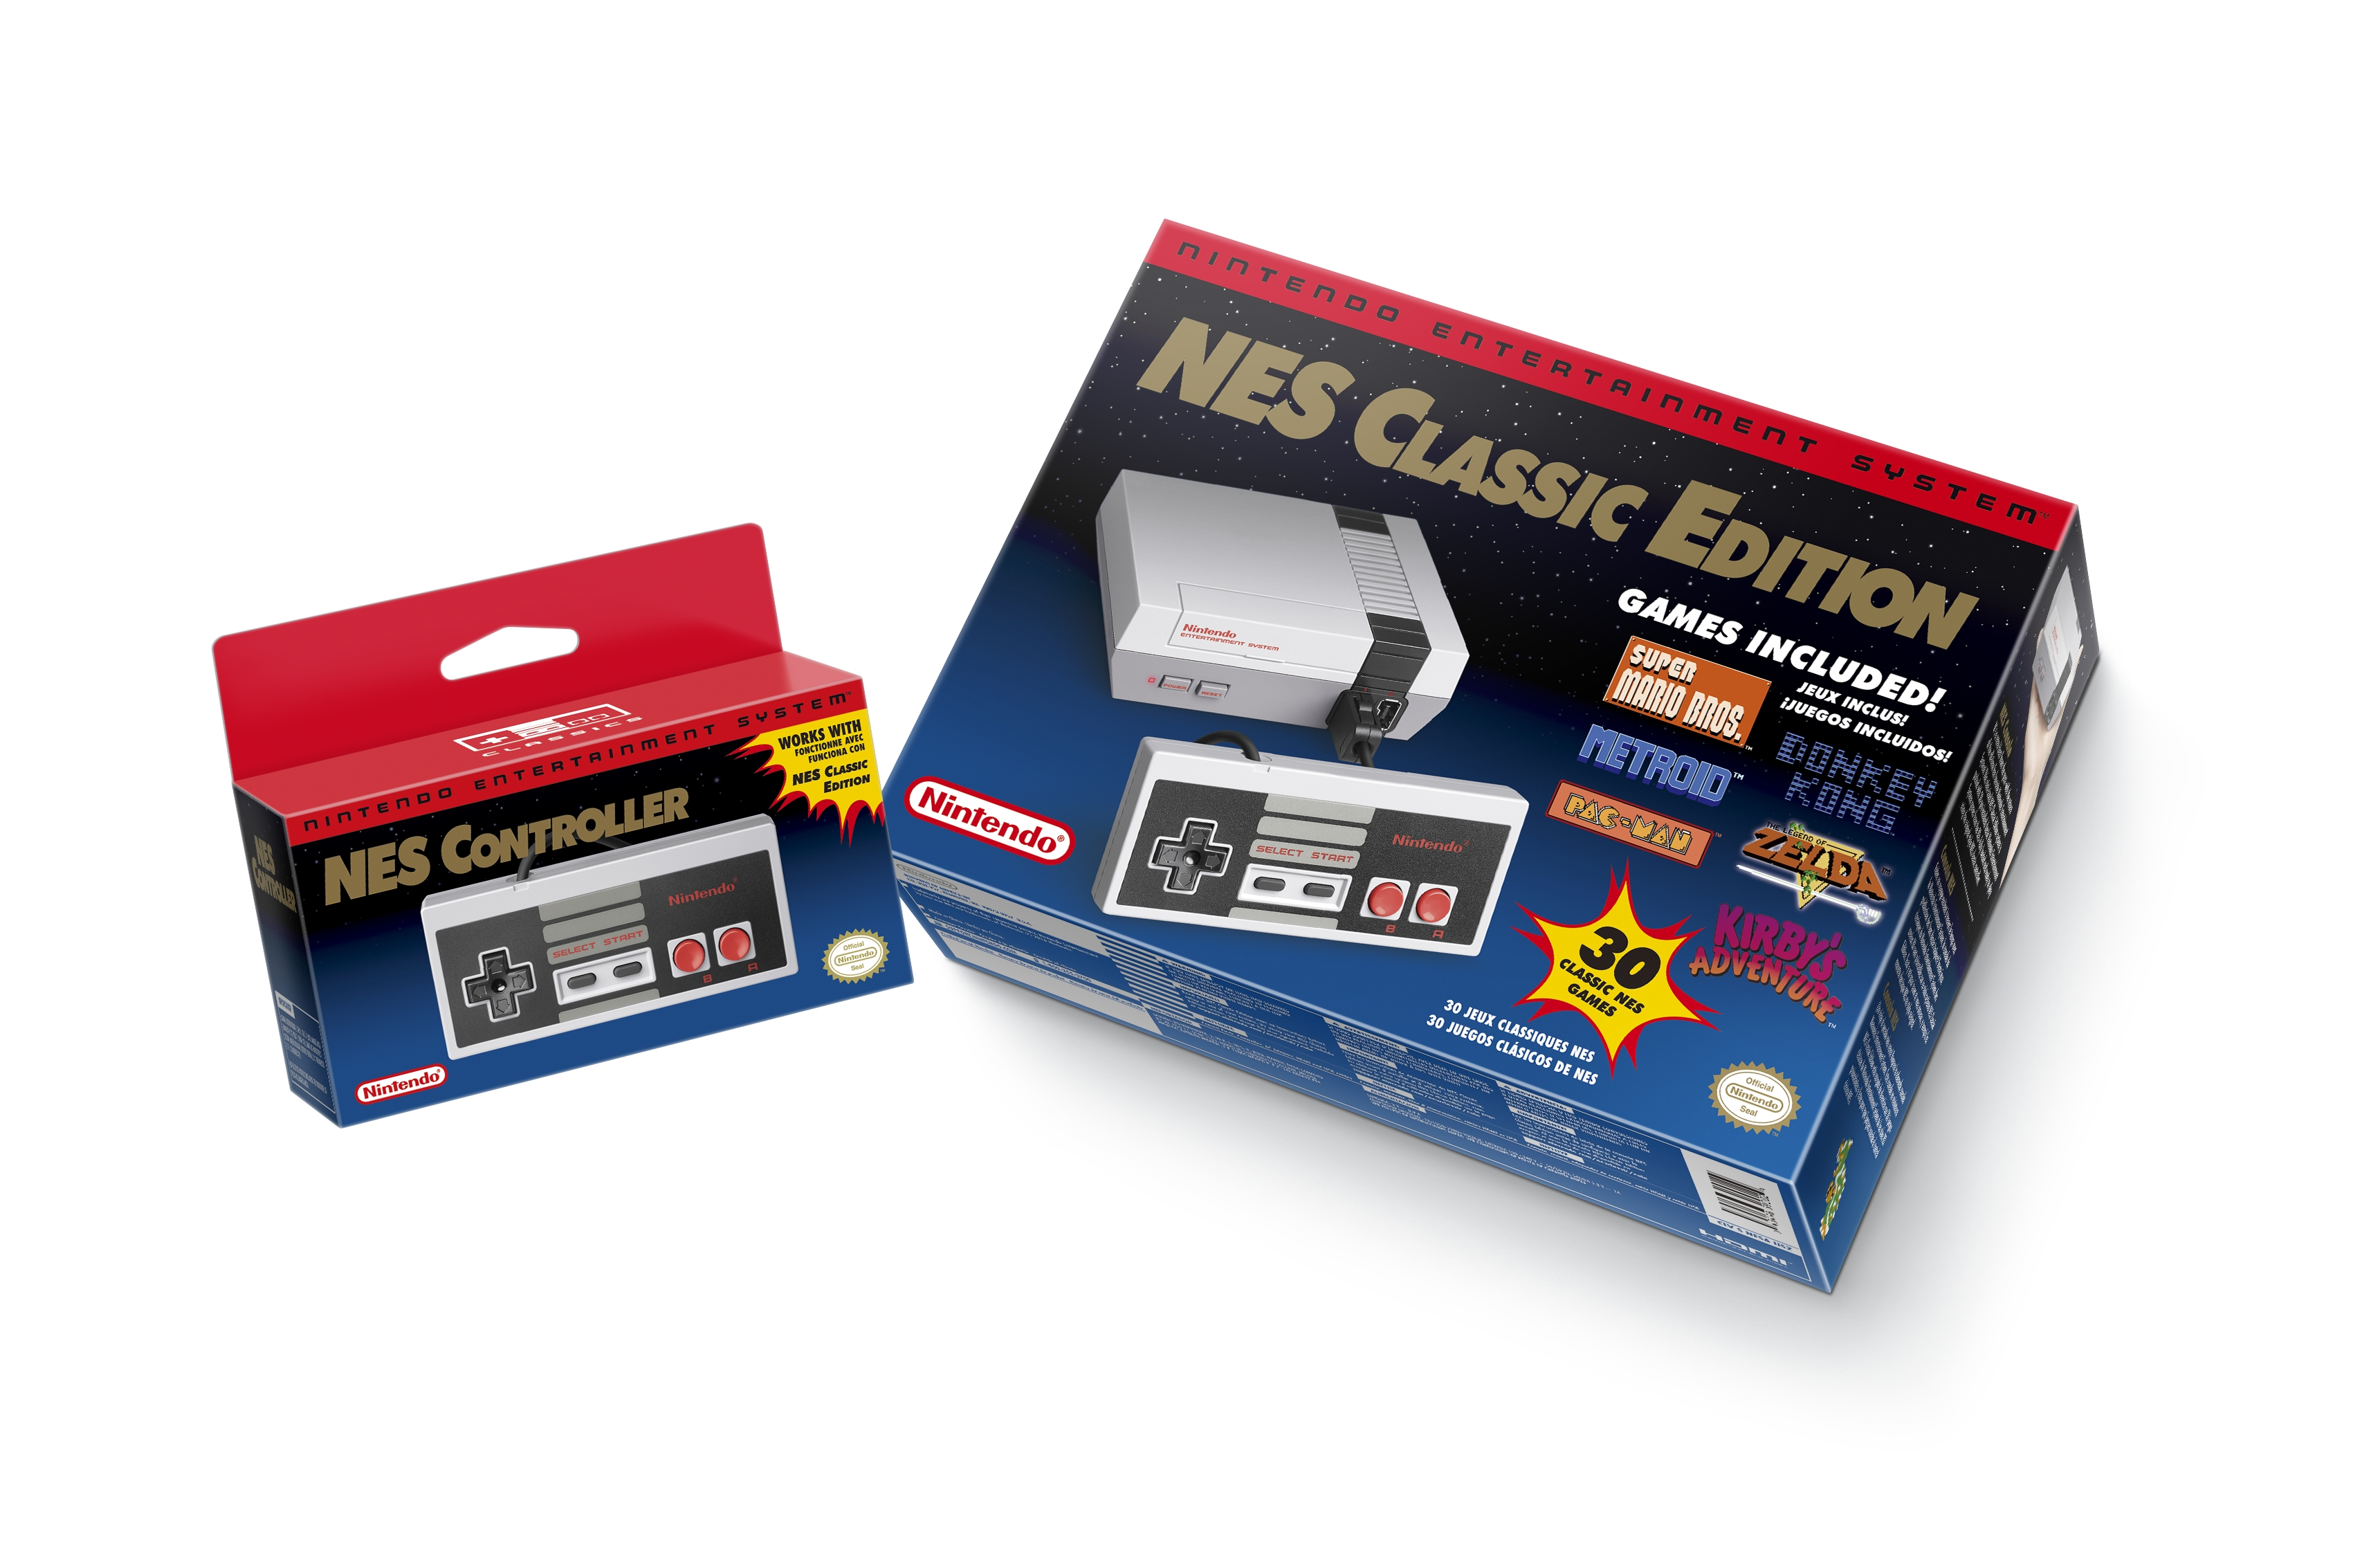 How To Fix The NES Classic Edition's Short Cords